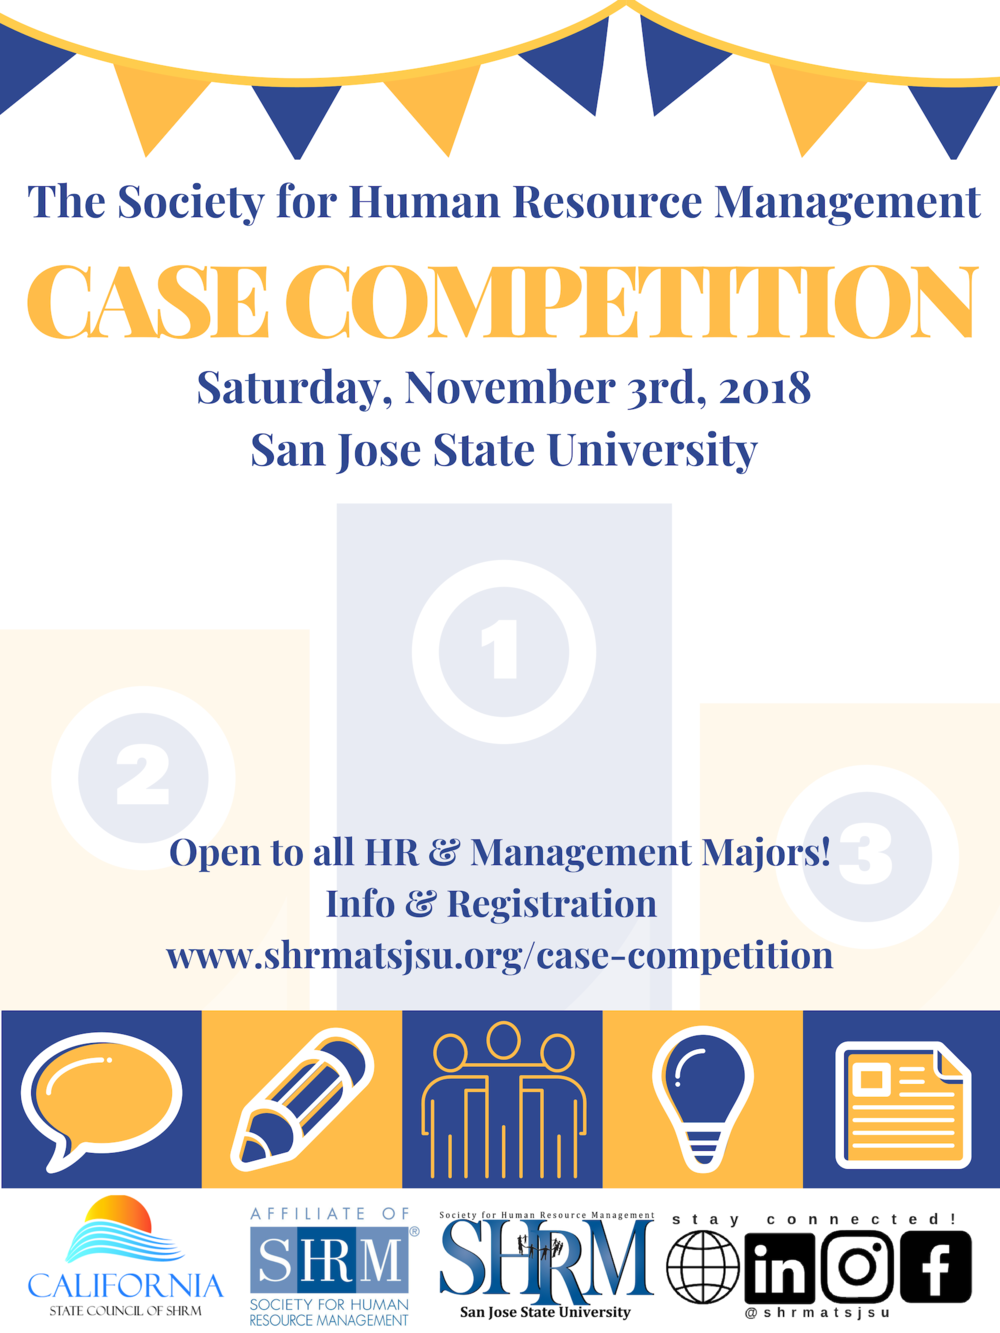 Cal SHRM Case Competition - We are currently not yet taking applicants for the 2019 SHRM Case Competition. Check back again for more information!The SHRM State Student Case Competition is an oral presentation competition hosted by CalSHRM State Council. Student teams from across the state receive and analyze a business case study in advance and prepare a solution in PowerPoint format to be submitted to the Competition Manager prior to the event.Postgraduate and Undergraduate level competitions! Preliminary round scores determine the top two teams to compete in the final rounds, also resenting their solution to a panel of judges. Prizes will be awarded.This opportunity is open to any team from a College or University in California with a degree program in management or HR. They need not have a student chapter to participate.